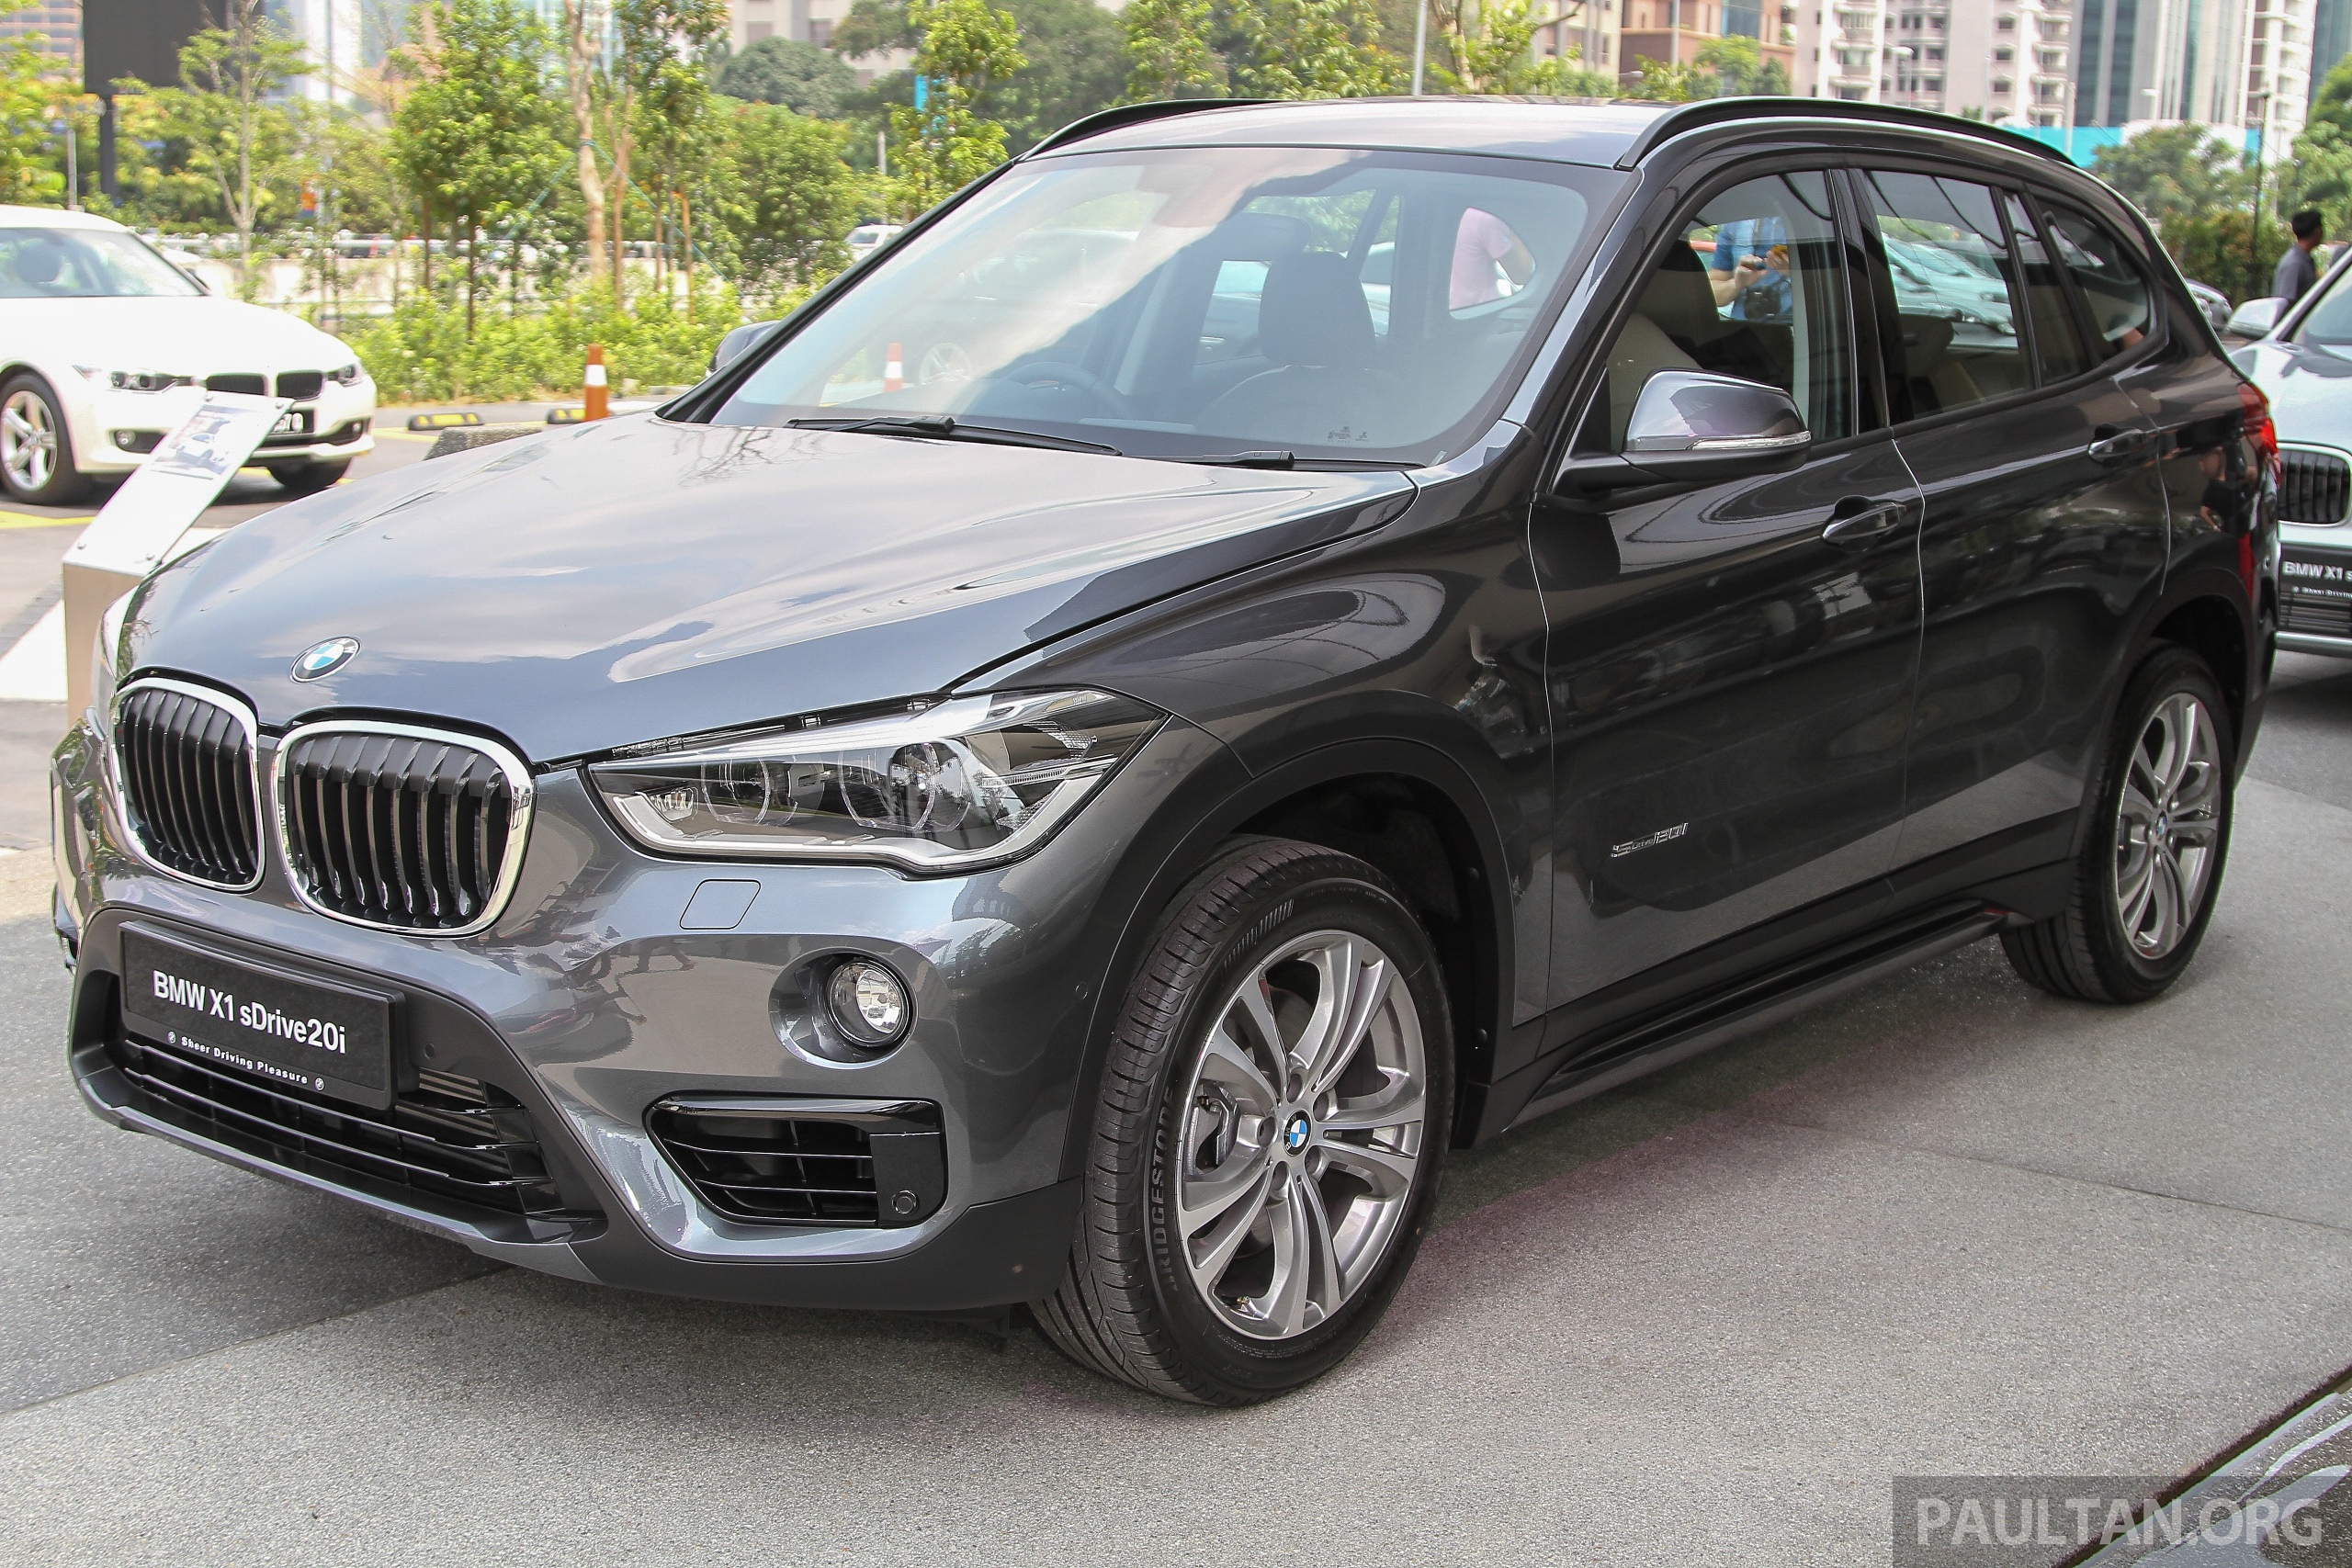 F48 Bmw X1 Sdrive20i Launched In M Sia Rm280k Paul Tan